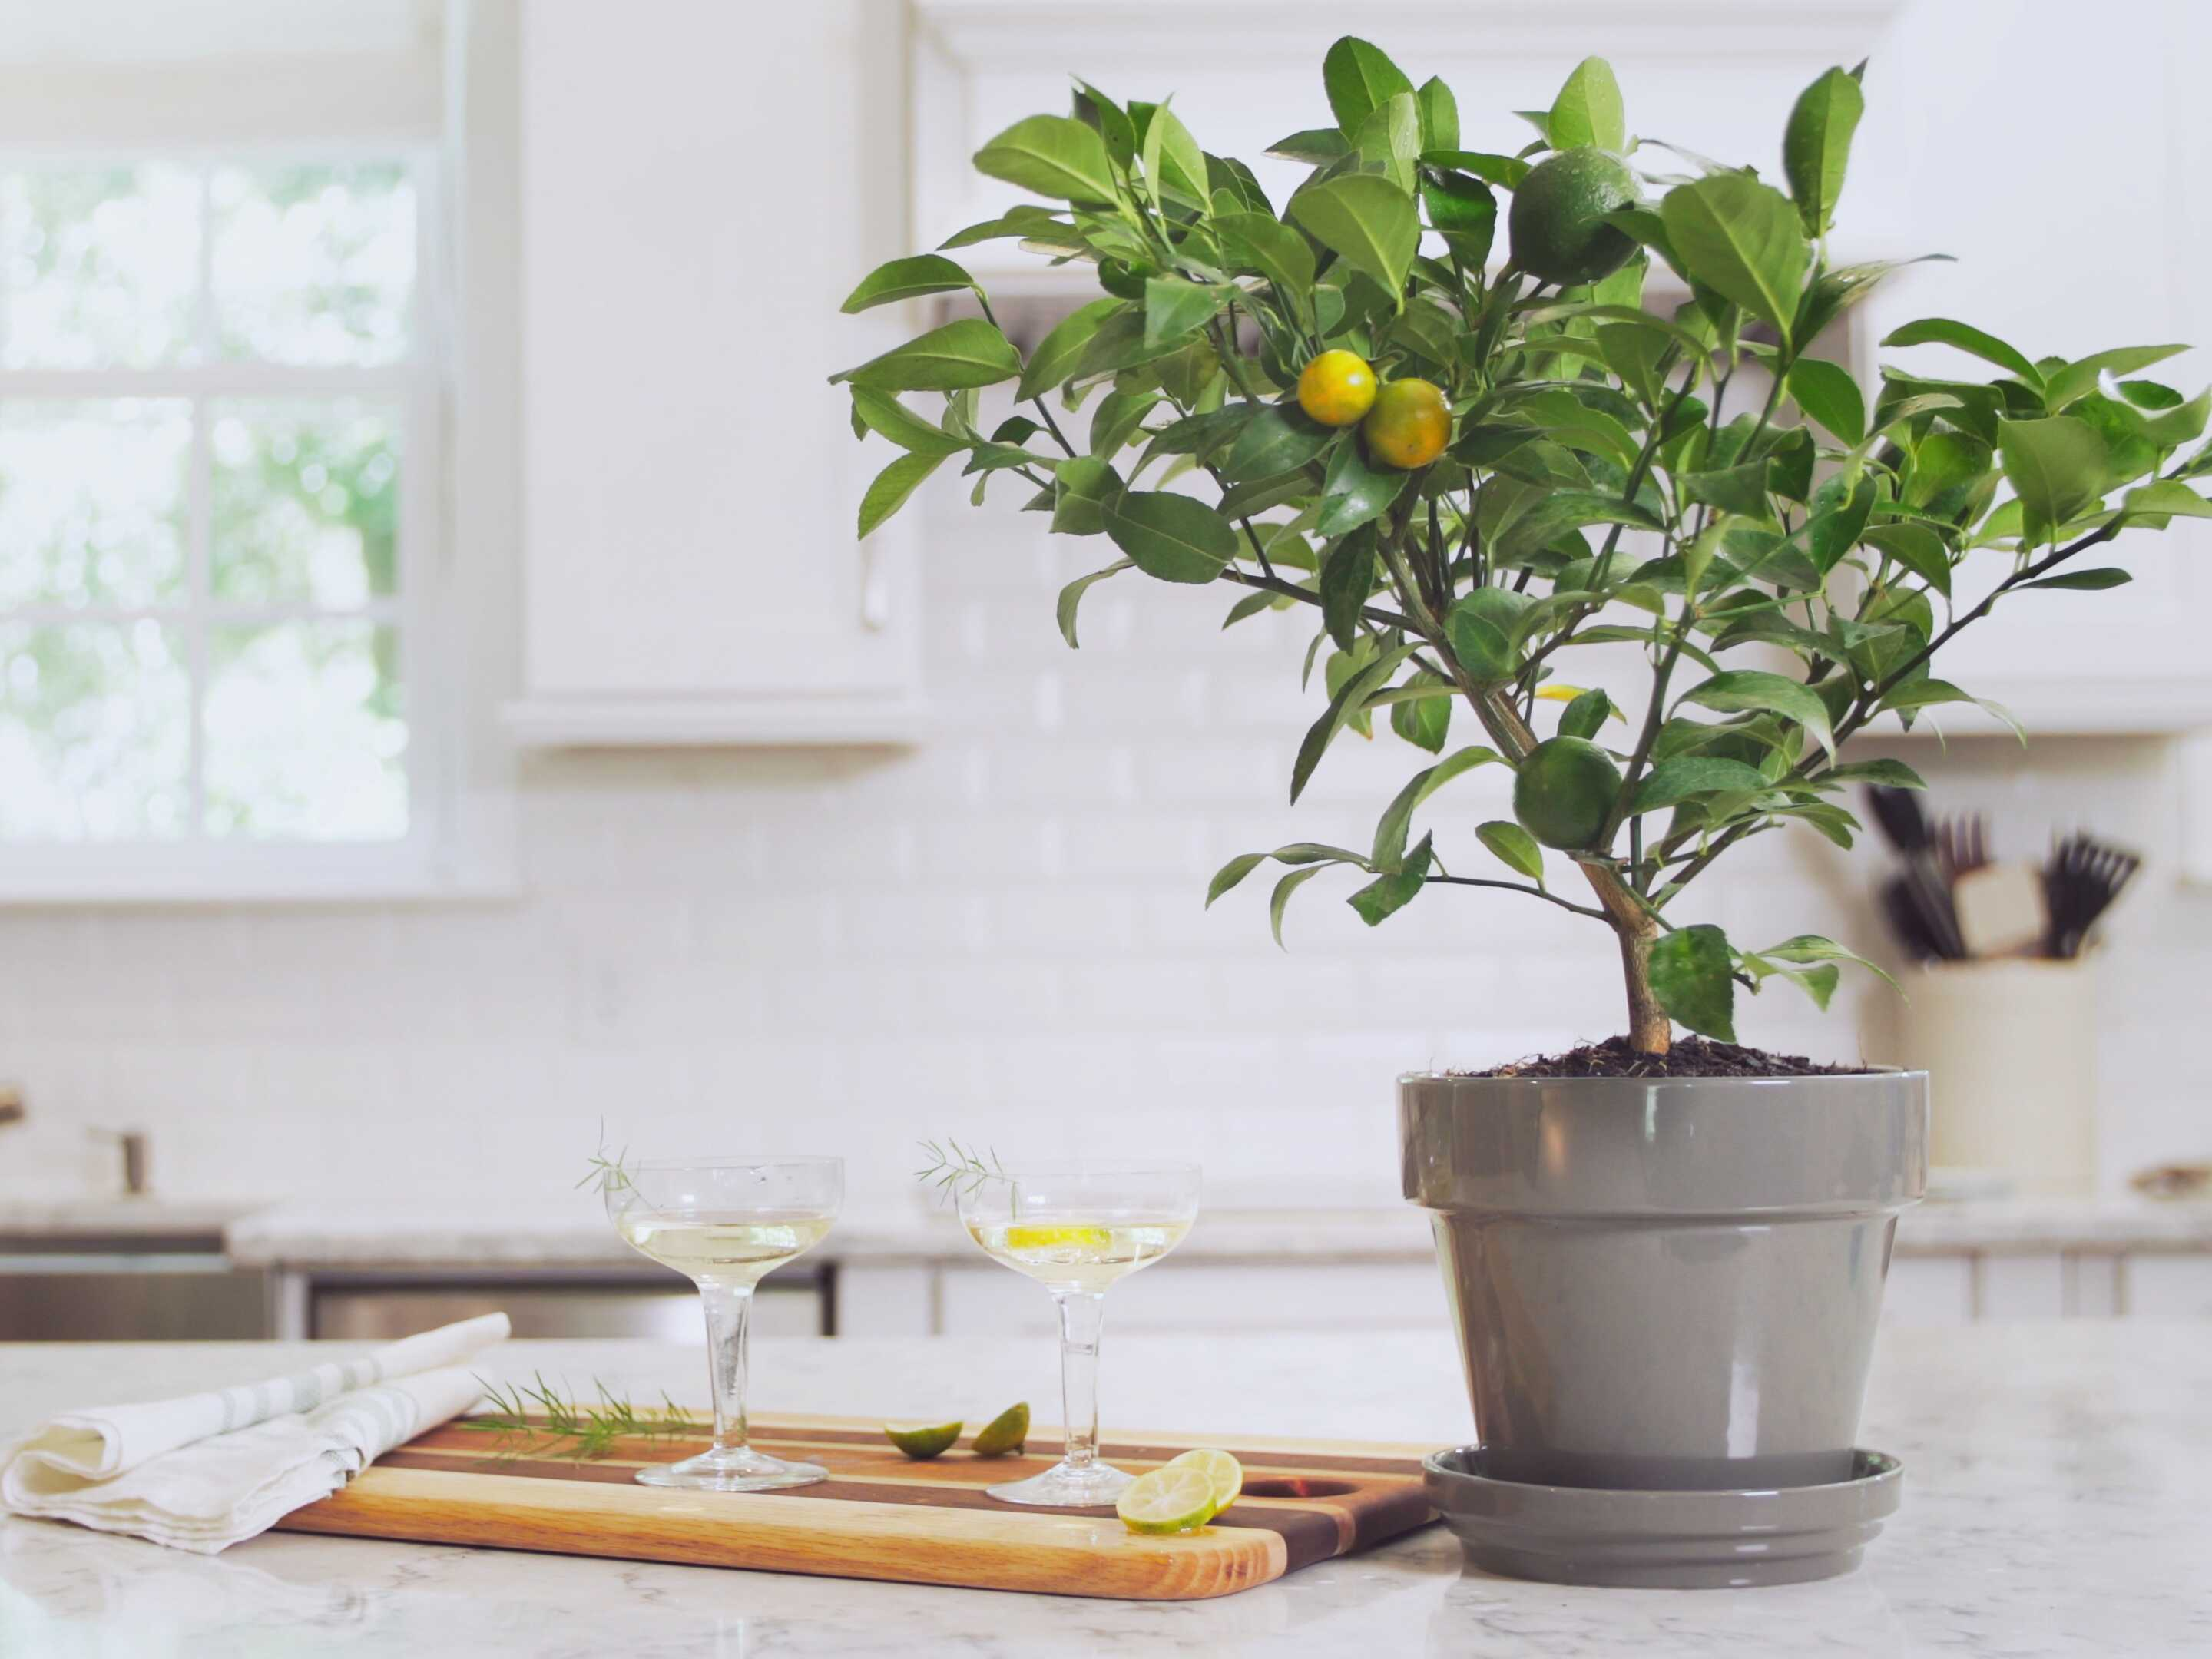 closeup cocktail photo in a kitchen with a small potted lemon citrus tree on the table